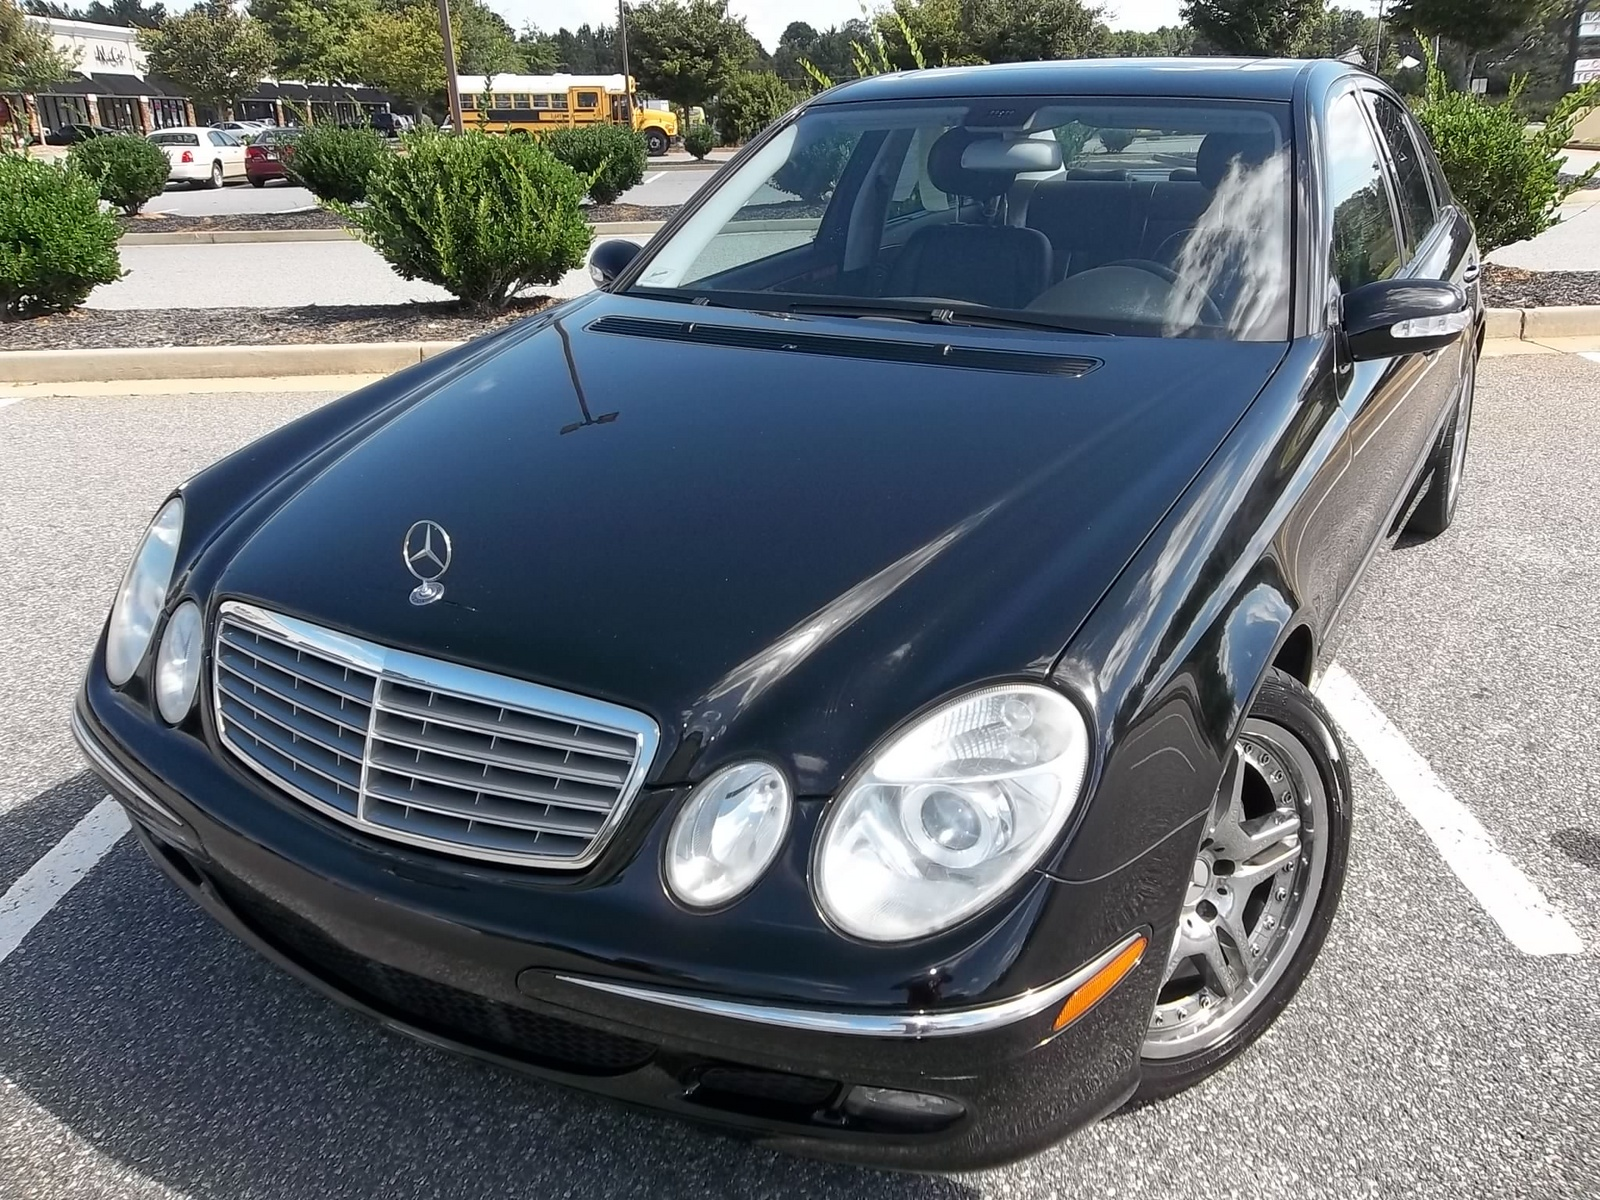 2006 mercedes benz e class for sale in atlanta ga cargurus for Mercedes benz for sale cargurus